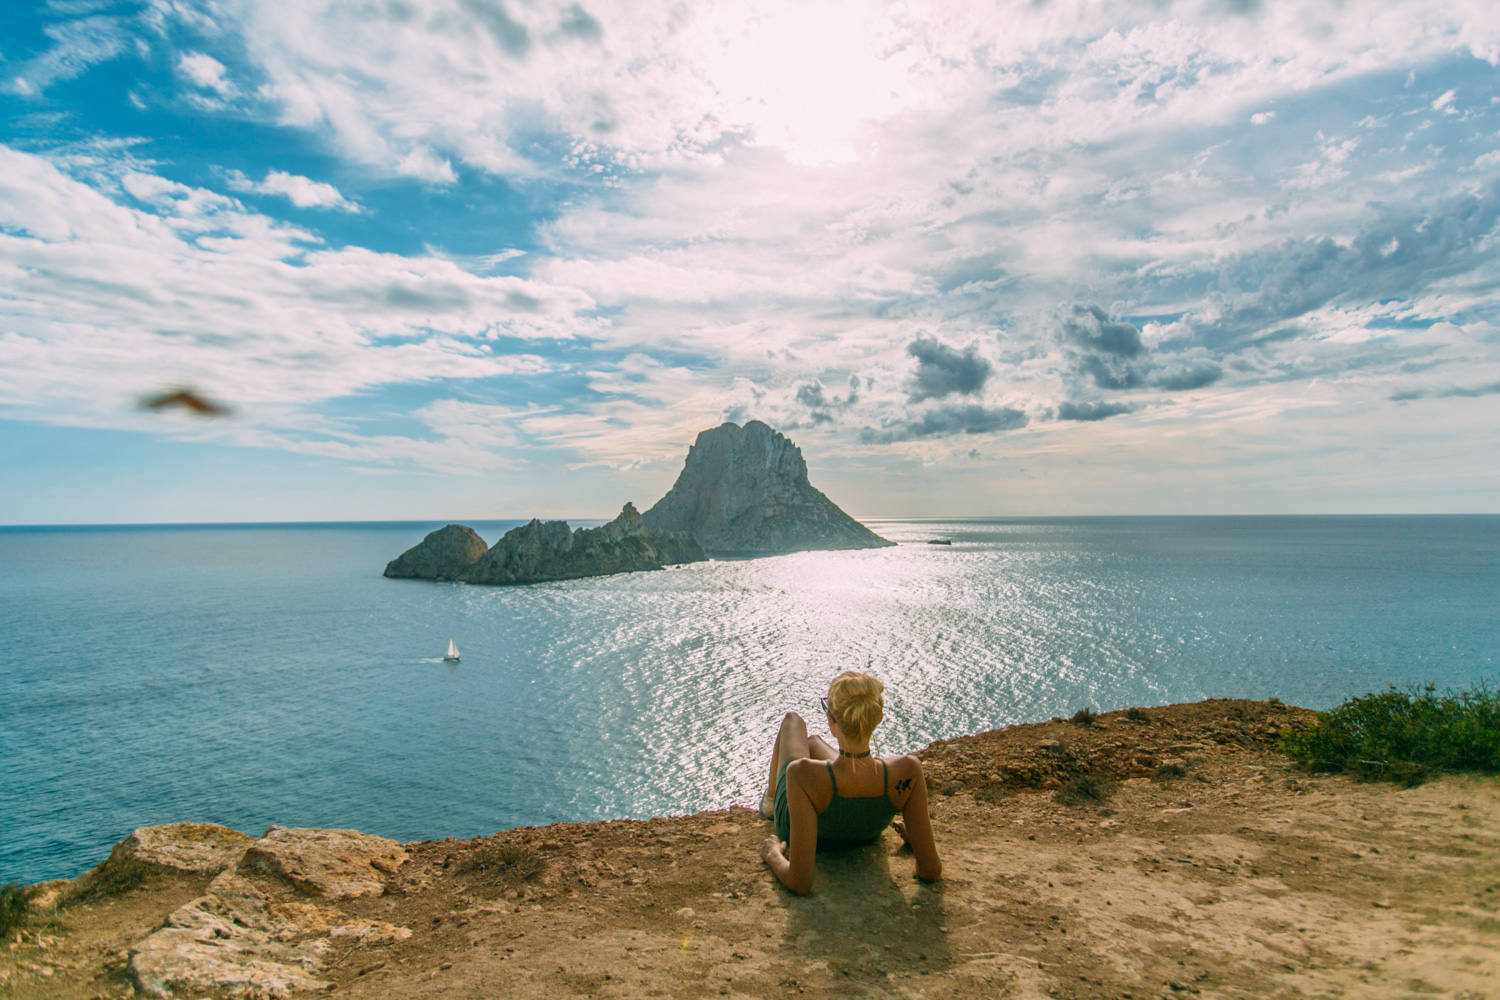 es vedra, ibiza, atlantis, sea nyphms, healing, legends, ufo, rochelle fox, wanderlife, travel tips, Europe, island, party, magnetic field, magnetic (19 of 24)